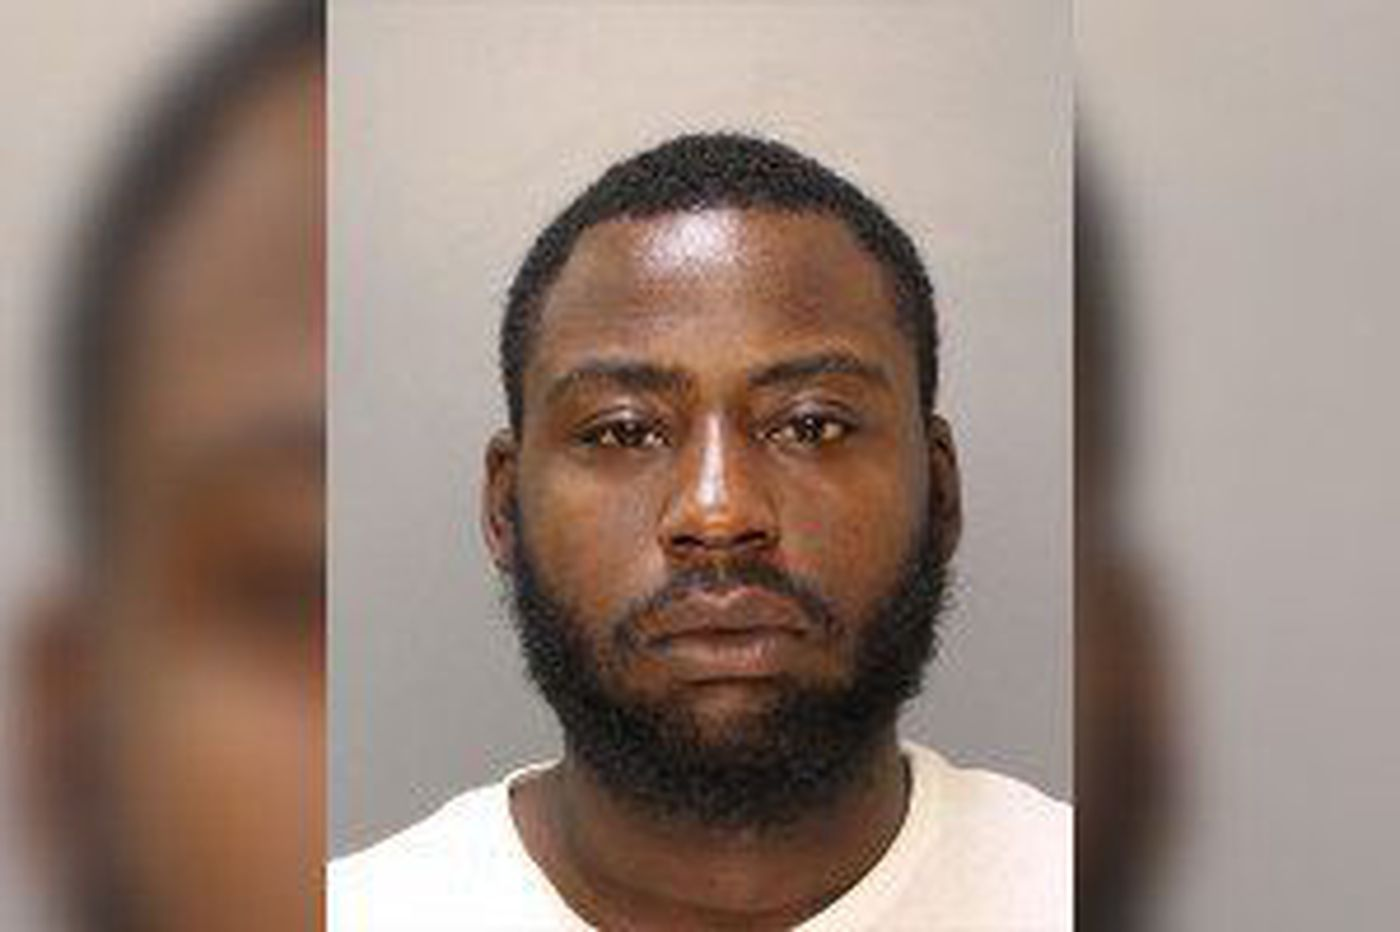 Philly man gets life sentence for slaying over $10 debt